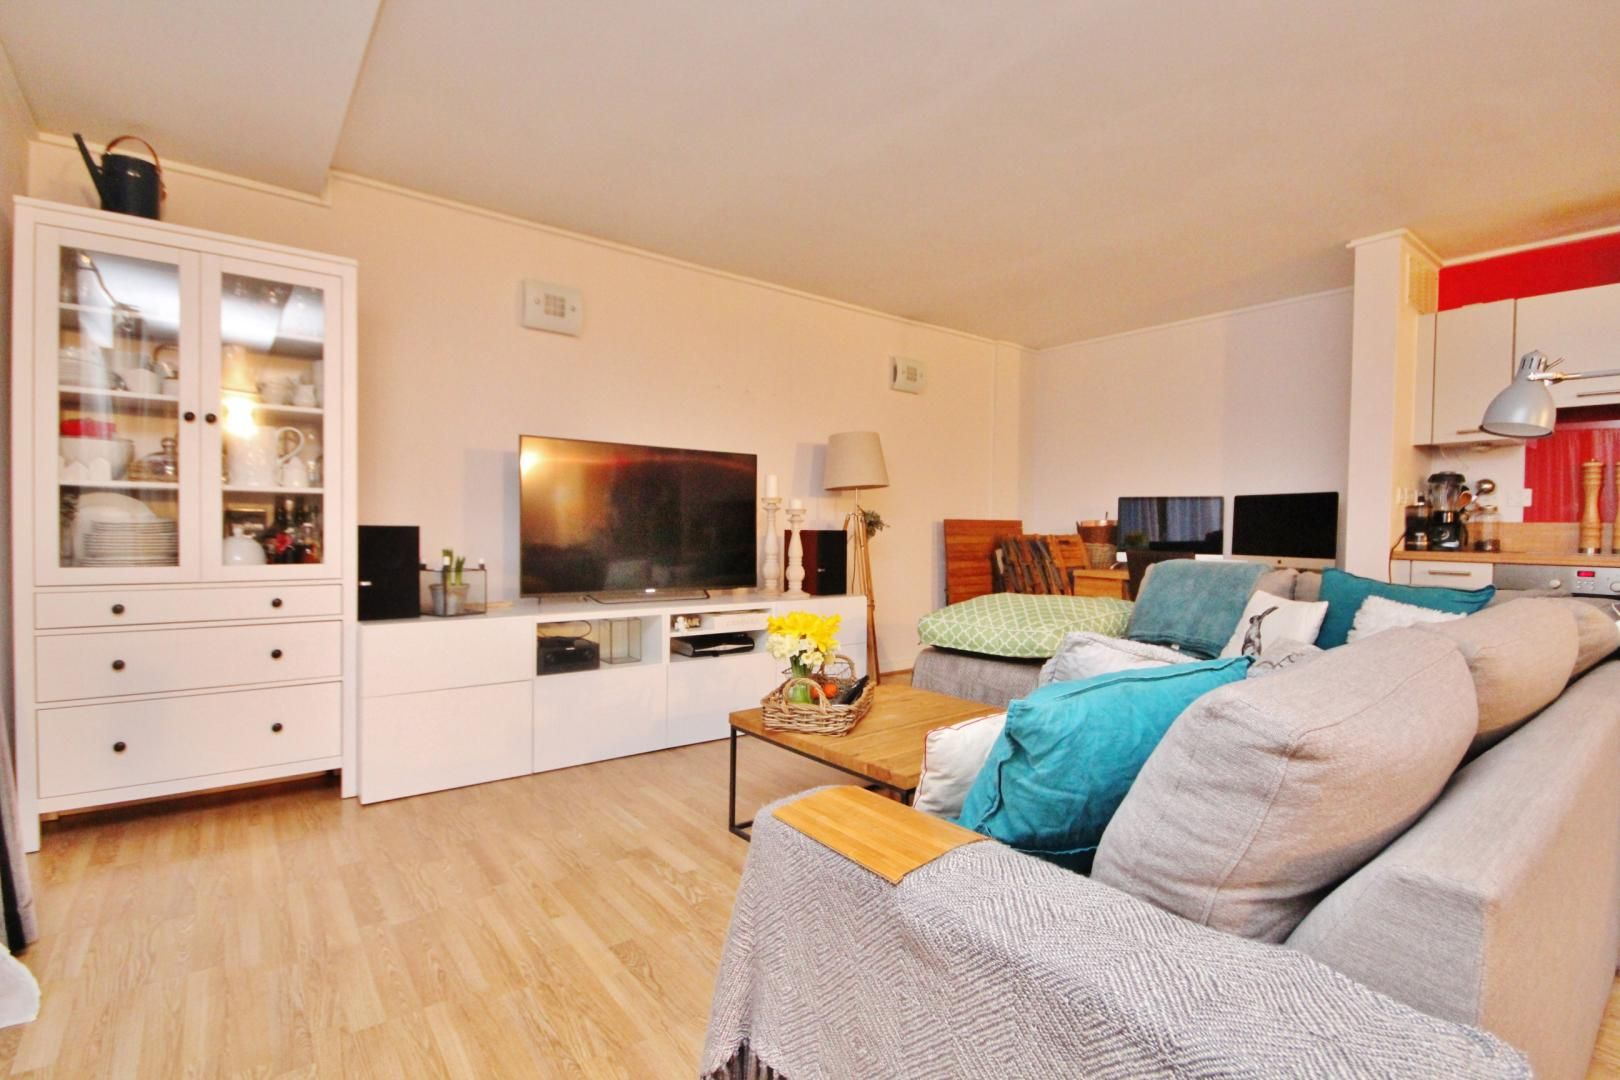 2 bed flat to rent in Maurer Court, SE10